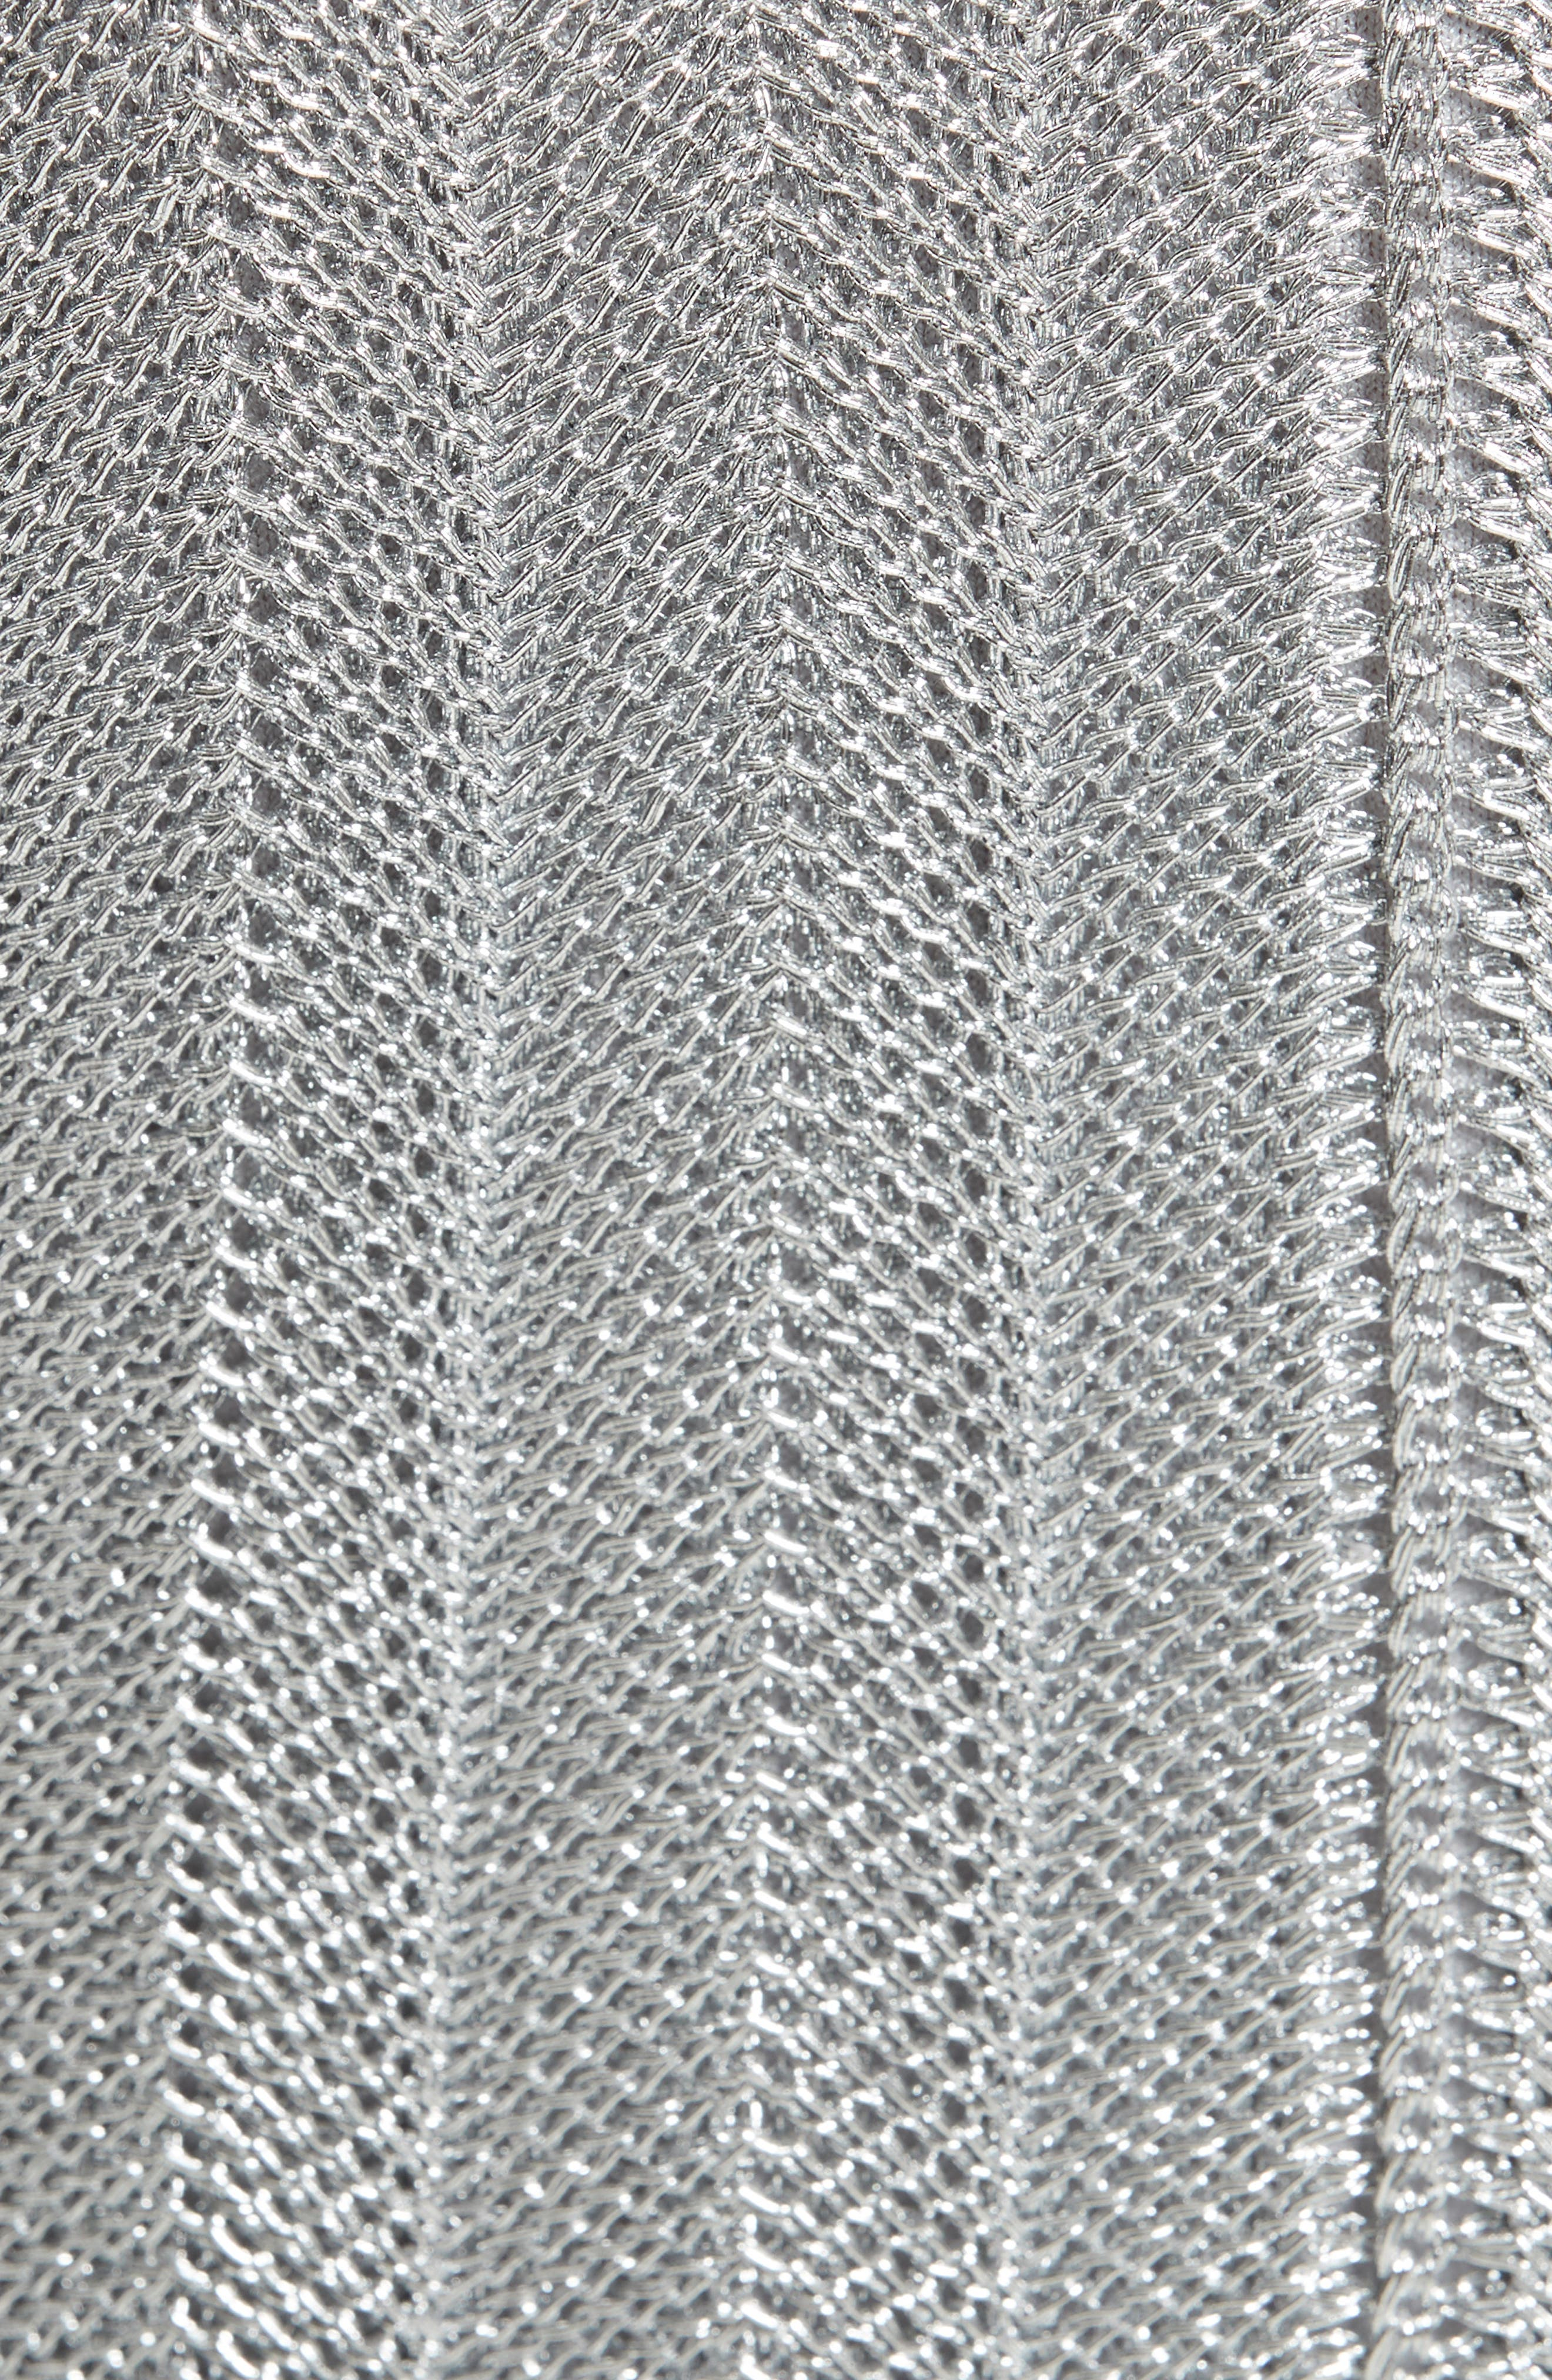 Metallic Knit Fit & Flare Dress,                             Alternate thumbnail 3, color,                             Silver Metallic